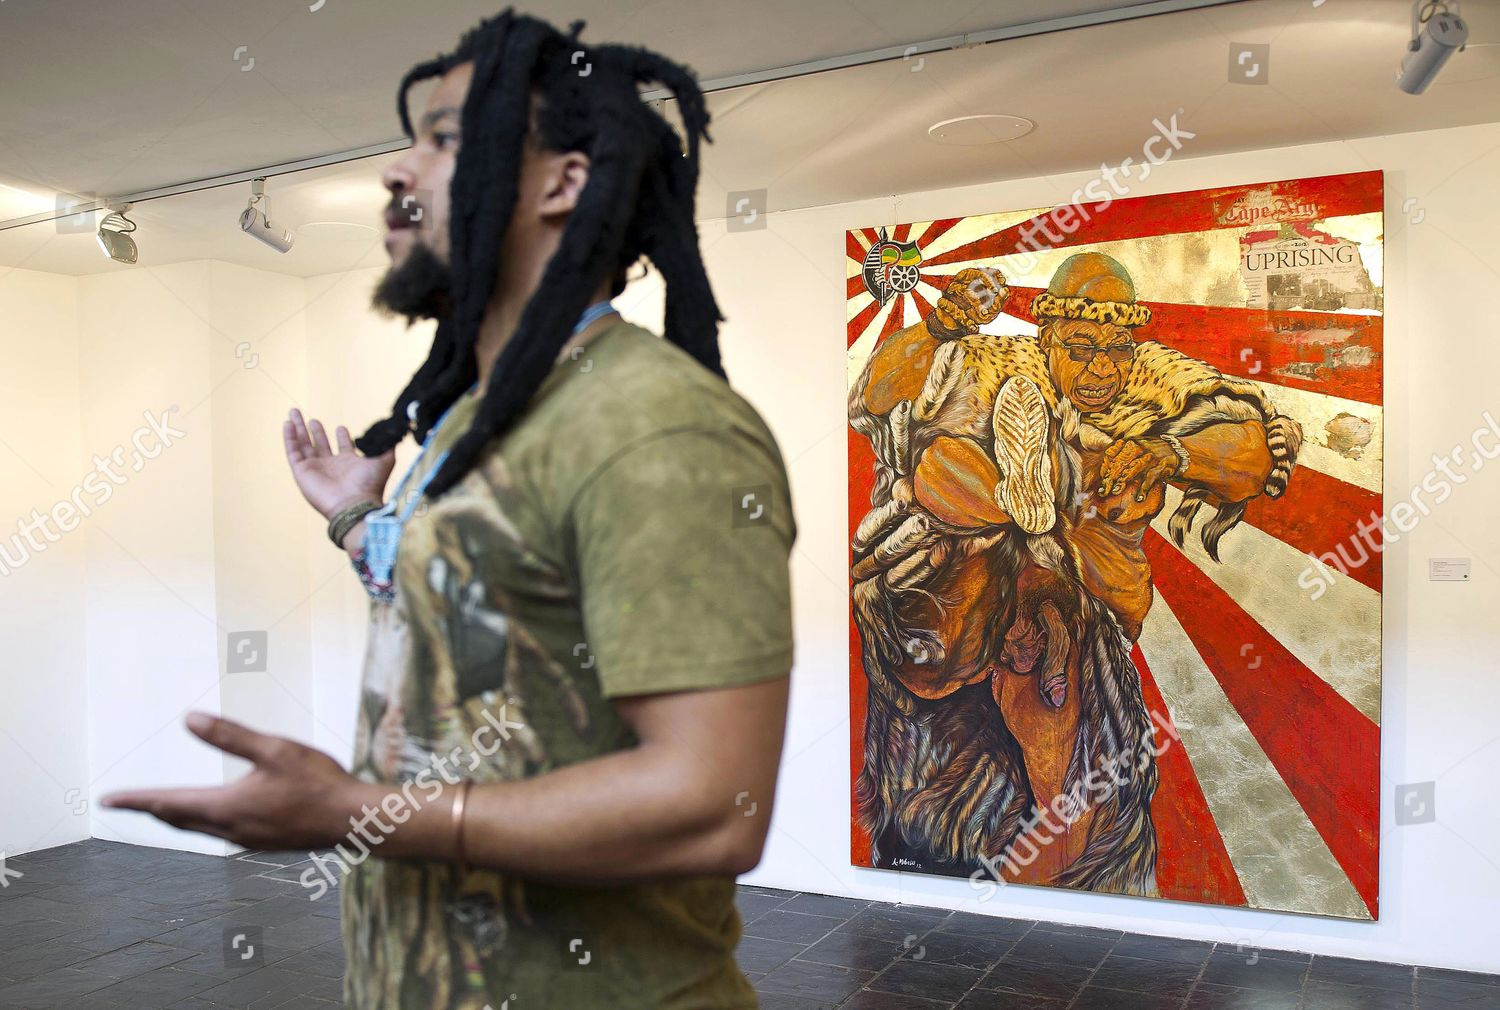 Weapon of Mass Destruction  painting of Jacob Zuma as Zulu warrior with  his genitals exposed, Cape Town, South Africa Stock Image by Gallo Images  for ... 0731093cd4f7